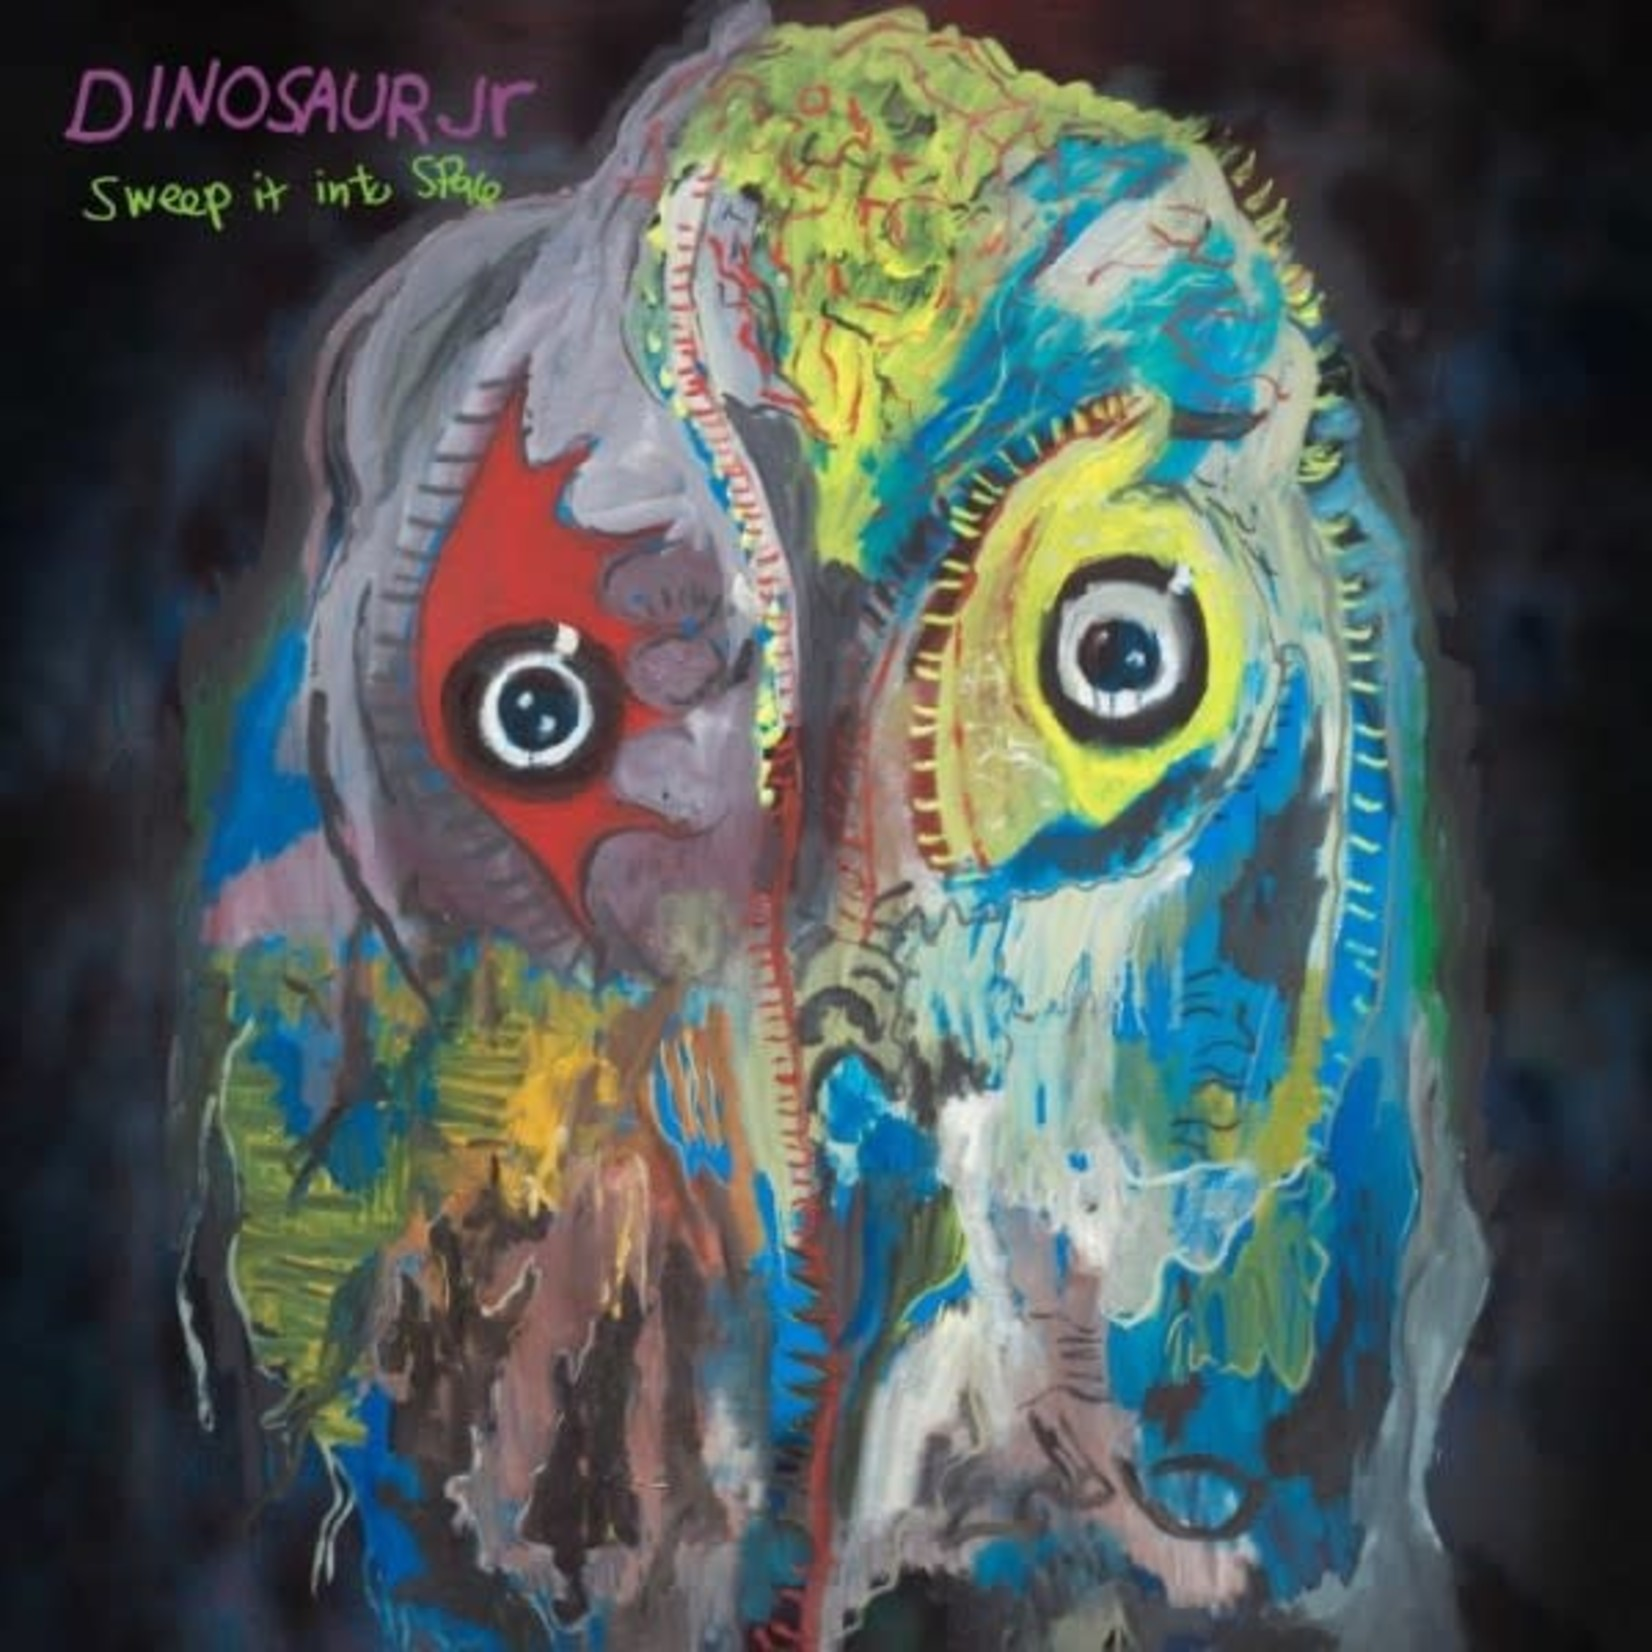 [New] Dinosaur Jr.: Sweep It Into Space